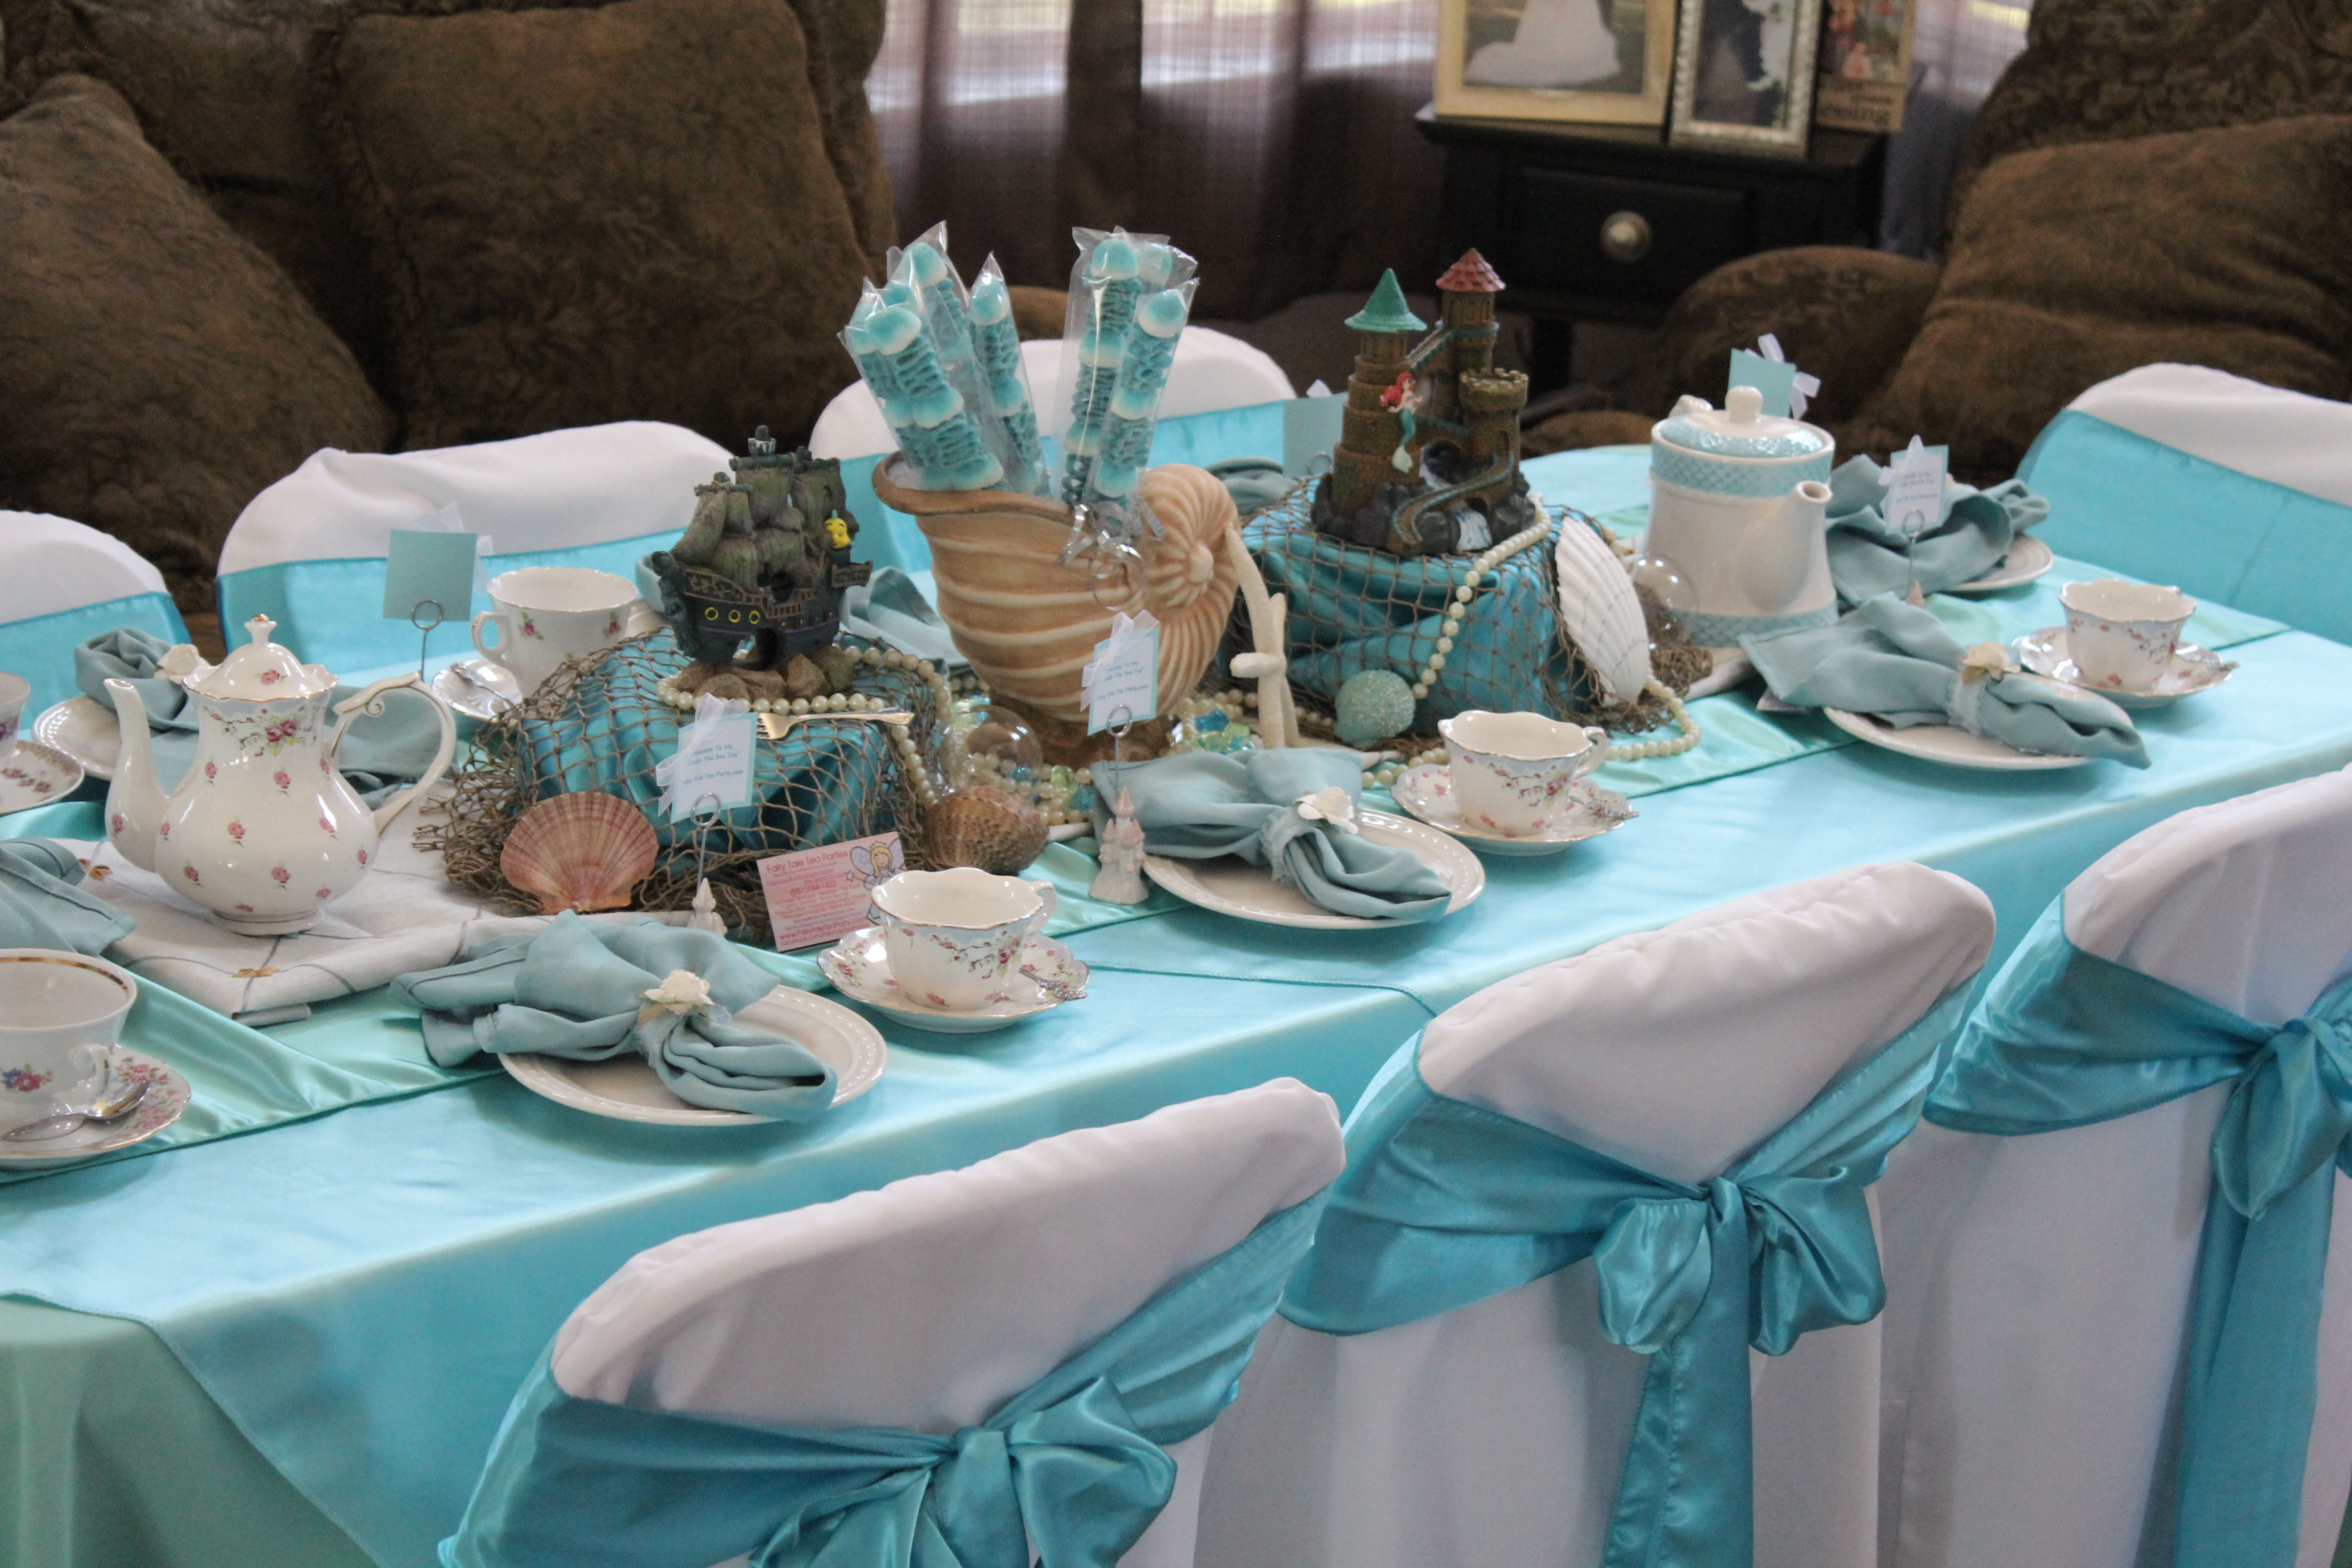 Little Mermaid centerpiece and table set up. Under the Sea theme. & Little Mermaid centerpiece and table set up. Under the Sea theme ...